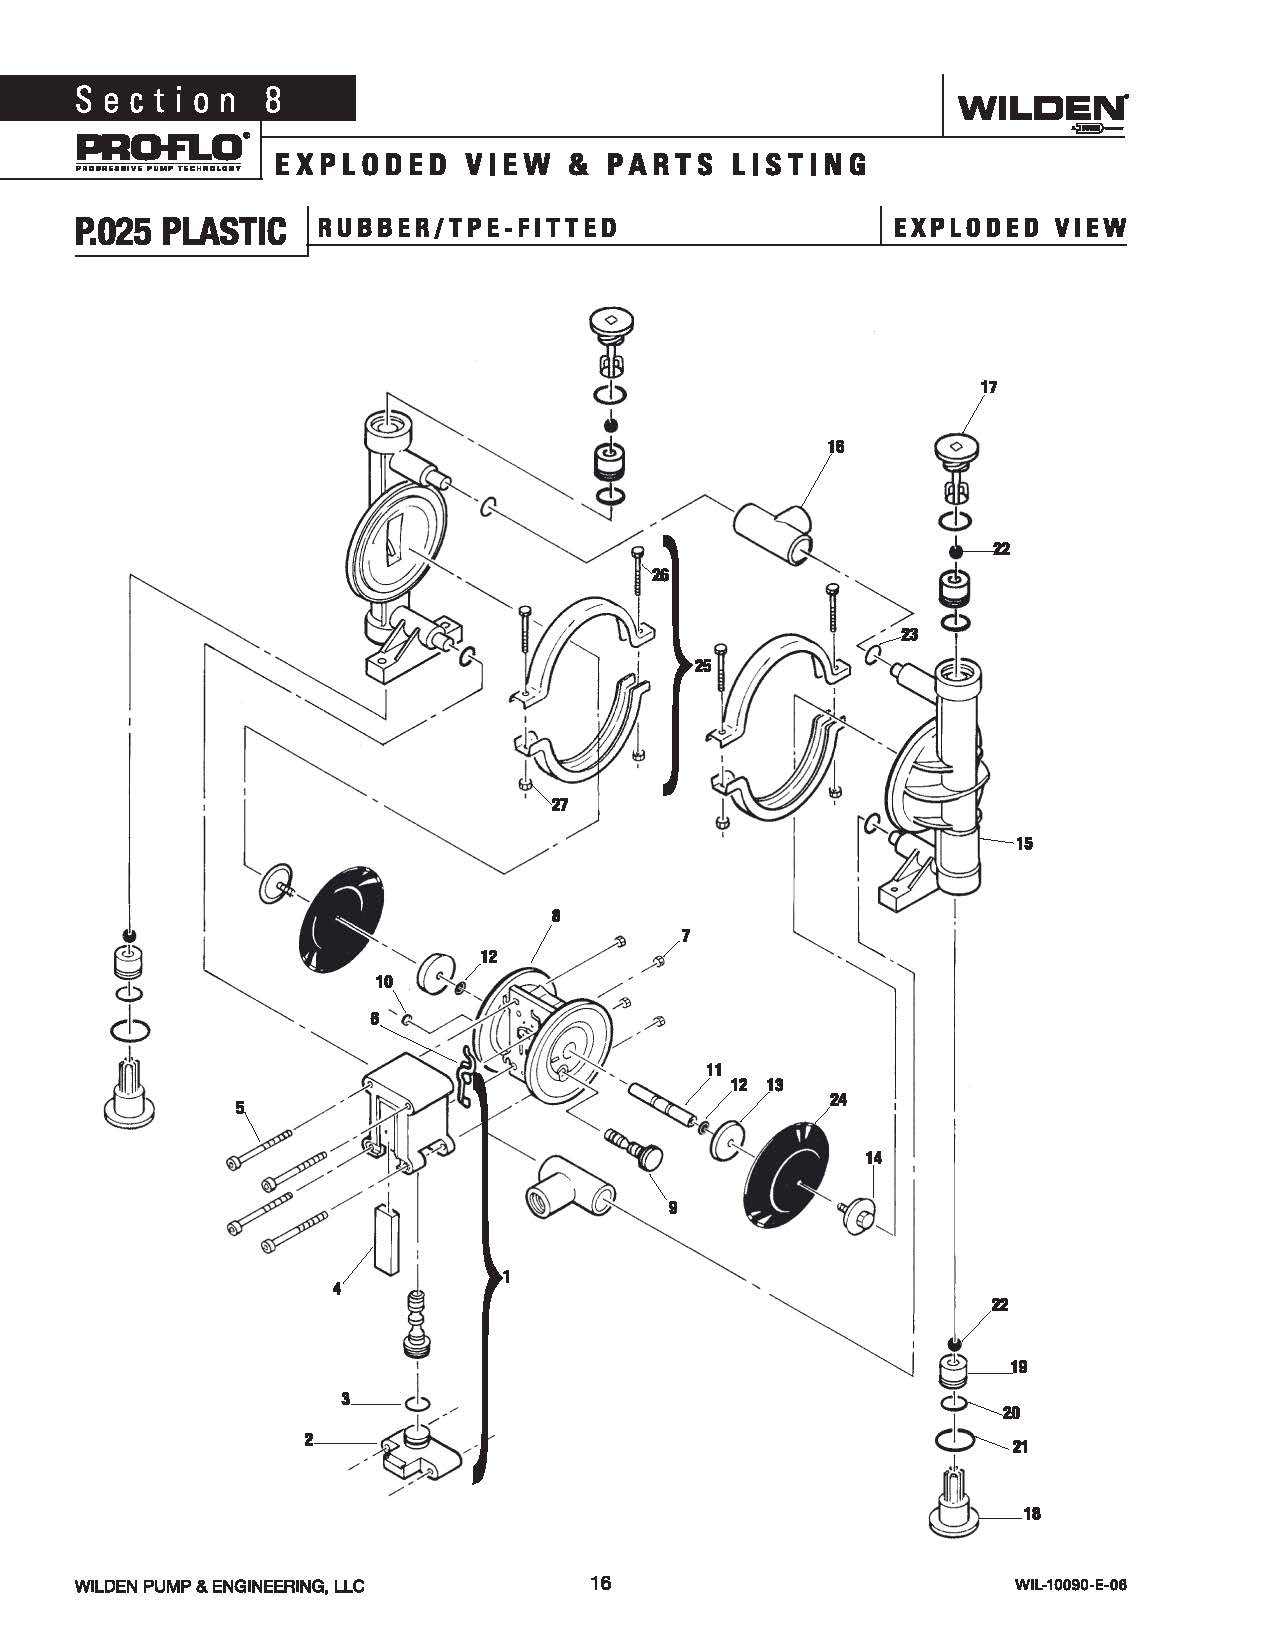 Wilden p025 plastic rubber tpe eom pumping solutions inc wilden p025 plastic rubber tpe eom breakdown view genuine wilden oem replacement parts and repair kits for wilden pump diaphragm pumps sciox Image collections